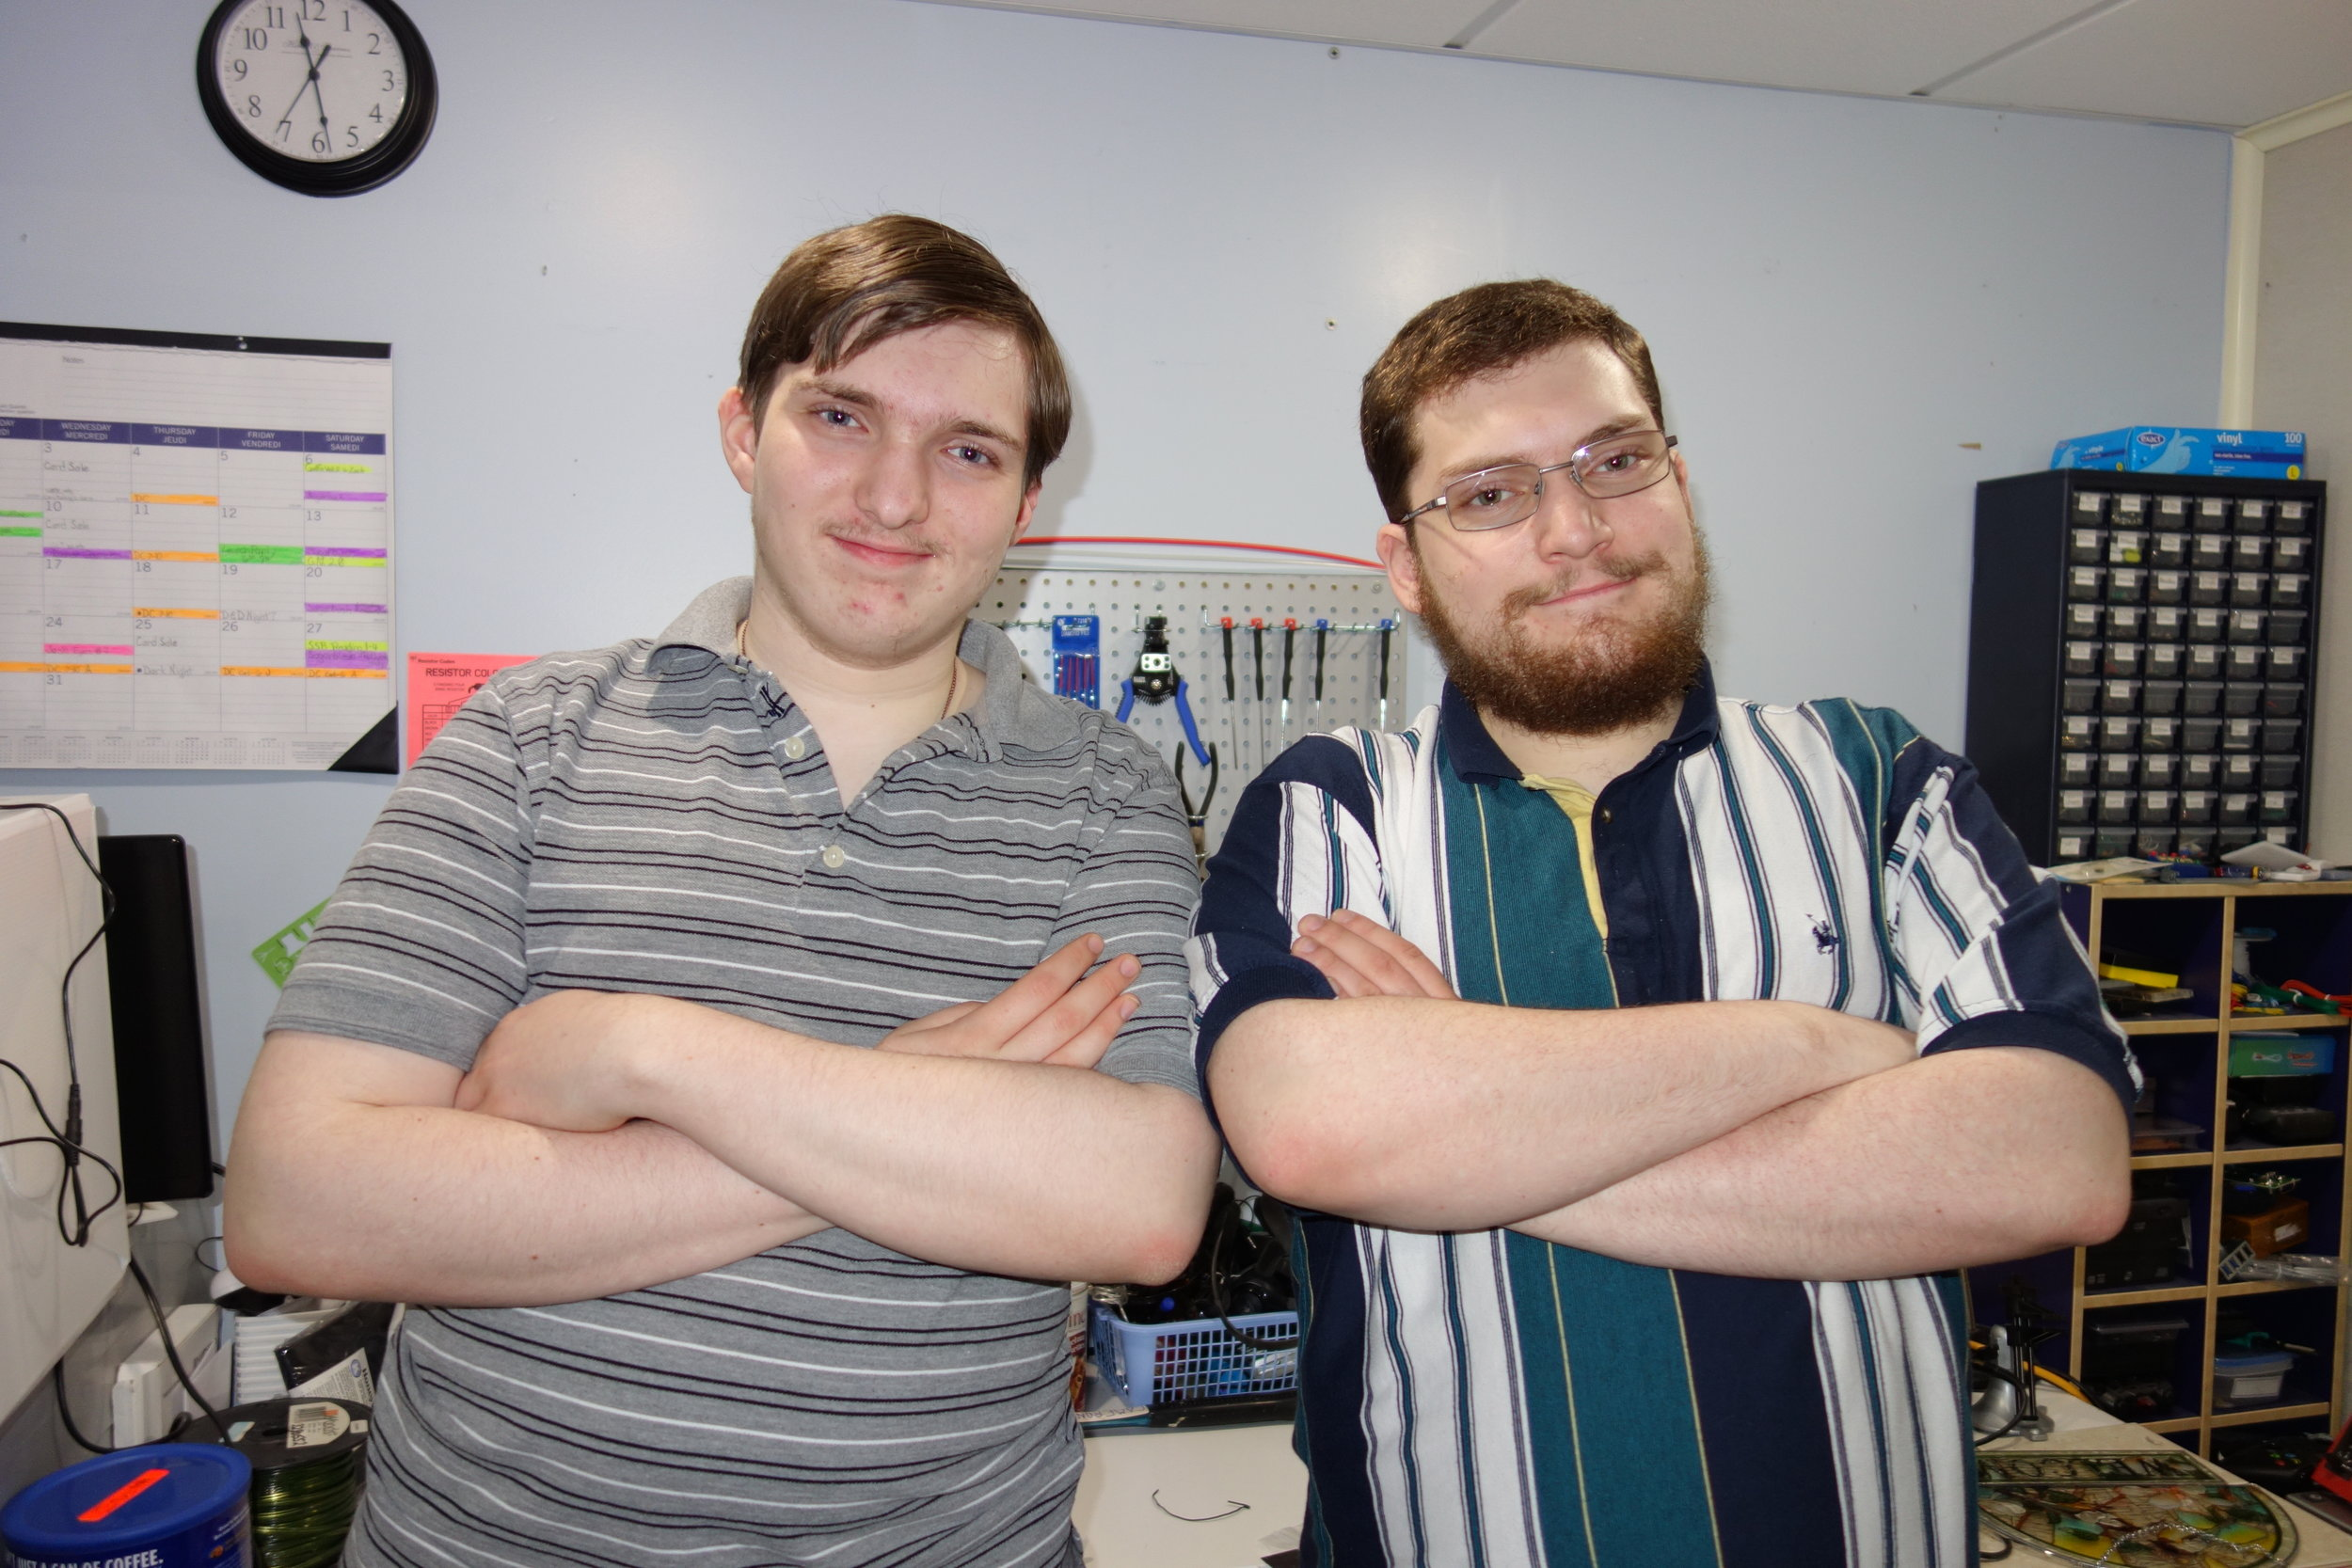 - Brothers, Andrew and Josh Cameron, started Andosh Accessible Gaming to help people with disabilities access video games. They grew up with Hyper Mobile Ehlers Danlos Syndrome. The brothers love playing video games however, their disability often made this difficult. They spent years looking for a solution without much success. The few potential controllers they were able to find were either too expensive, or didn't properly meet their needs. Eventually, they decided to try building their own solutions. Today, they are putting their well-honed skills to practical use; adapting and modifying games controllers, repairing game consoles and 3-D printing.